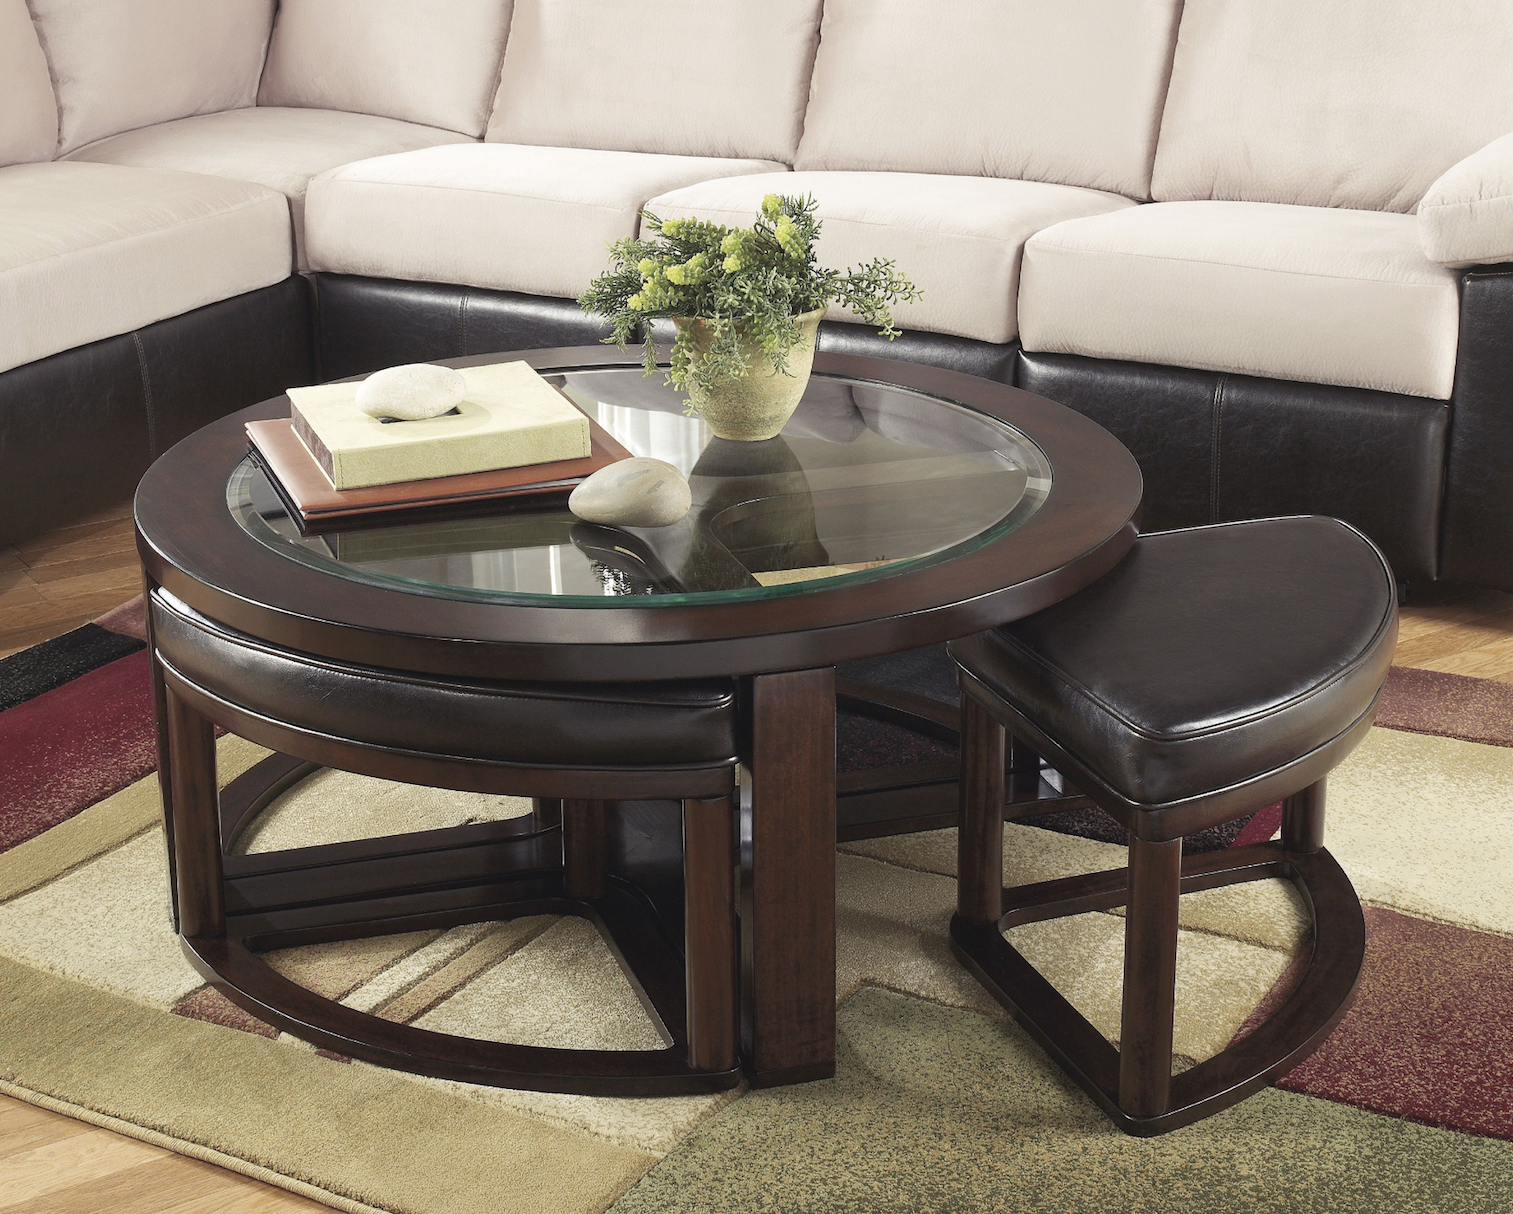 Ashley Marion Round Coffee Table With Nesting Stools Homemakers Furniture Coffee Table Wood Coffee Table Coffee Table With Stools [ 1214 x 1513 Pixel ]